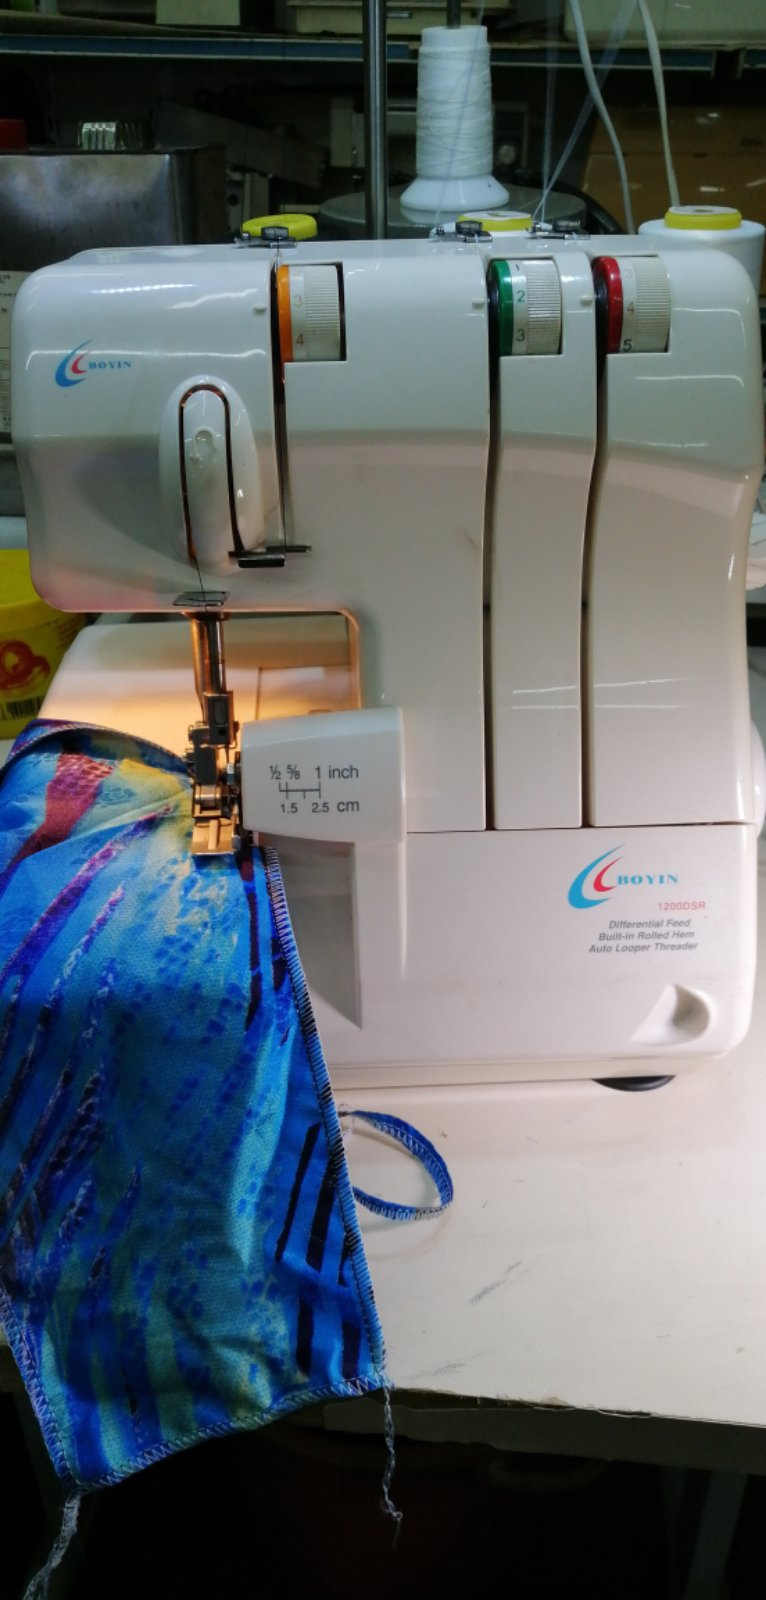 Boyin Portable Overlock Sewing machine